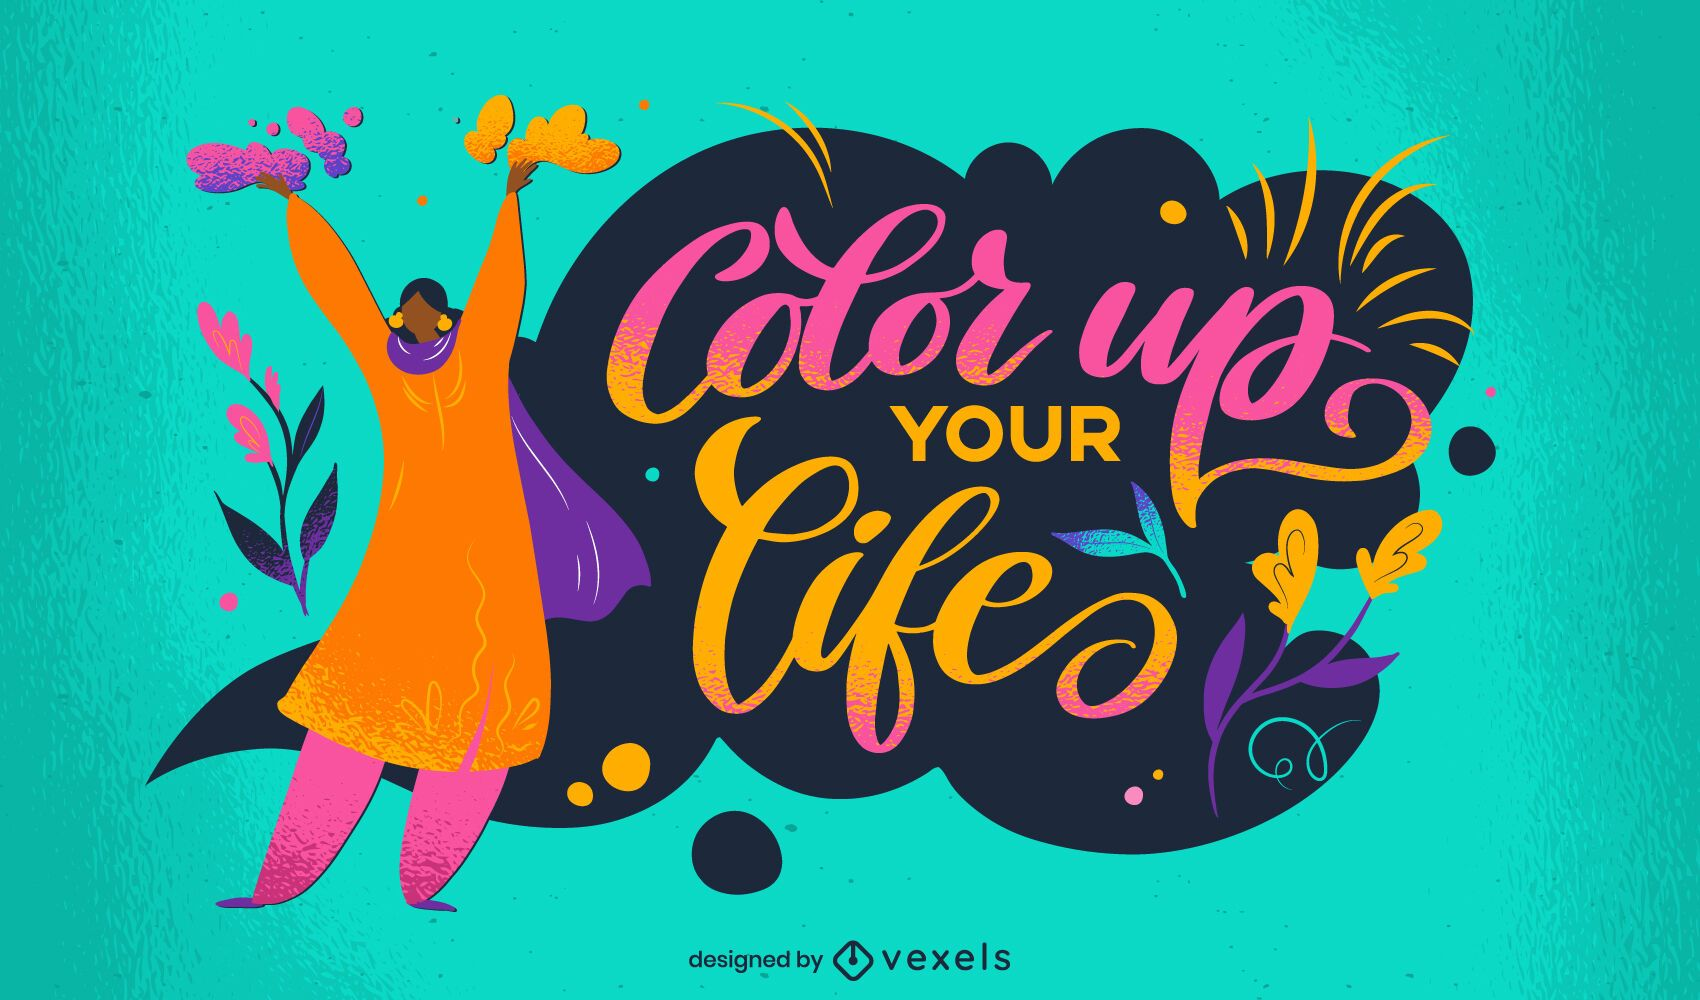 Color up your life lettering design